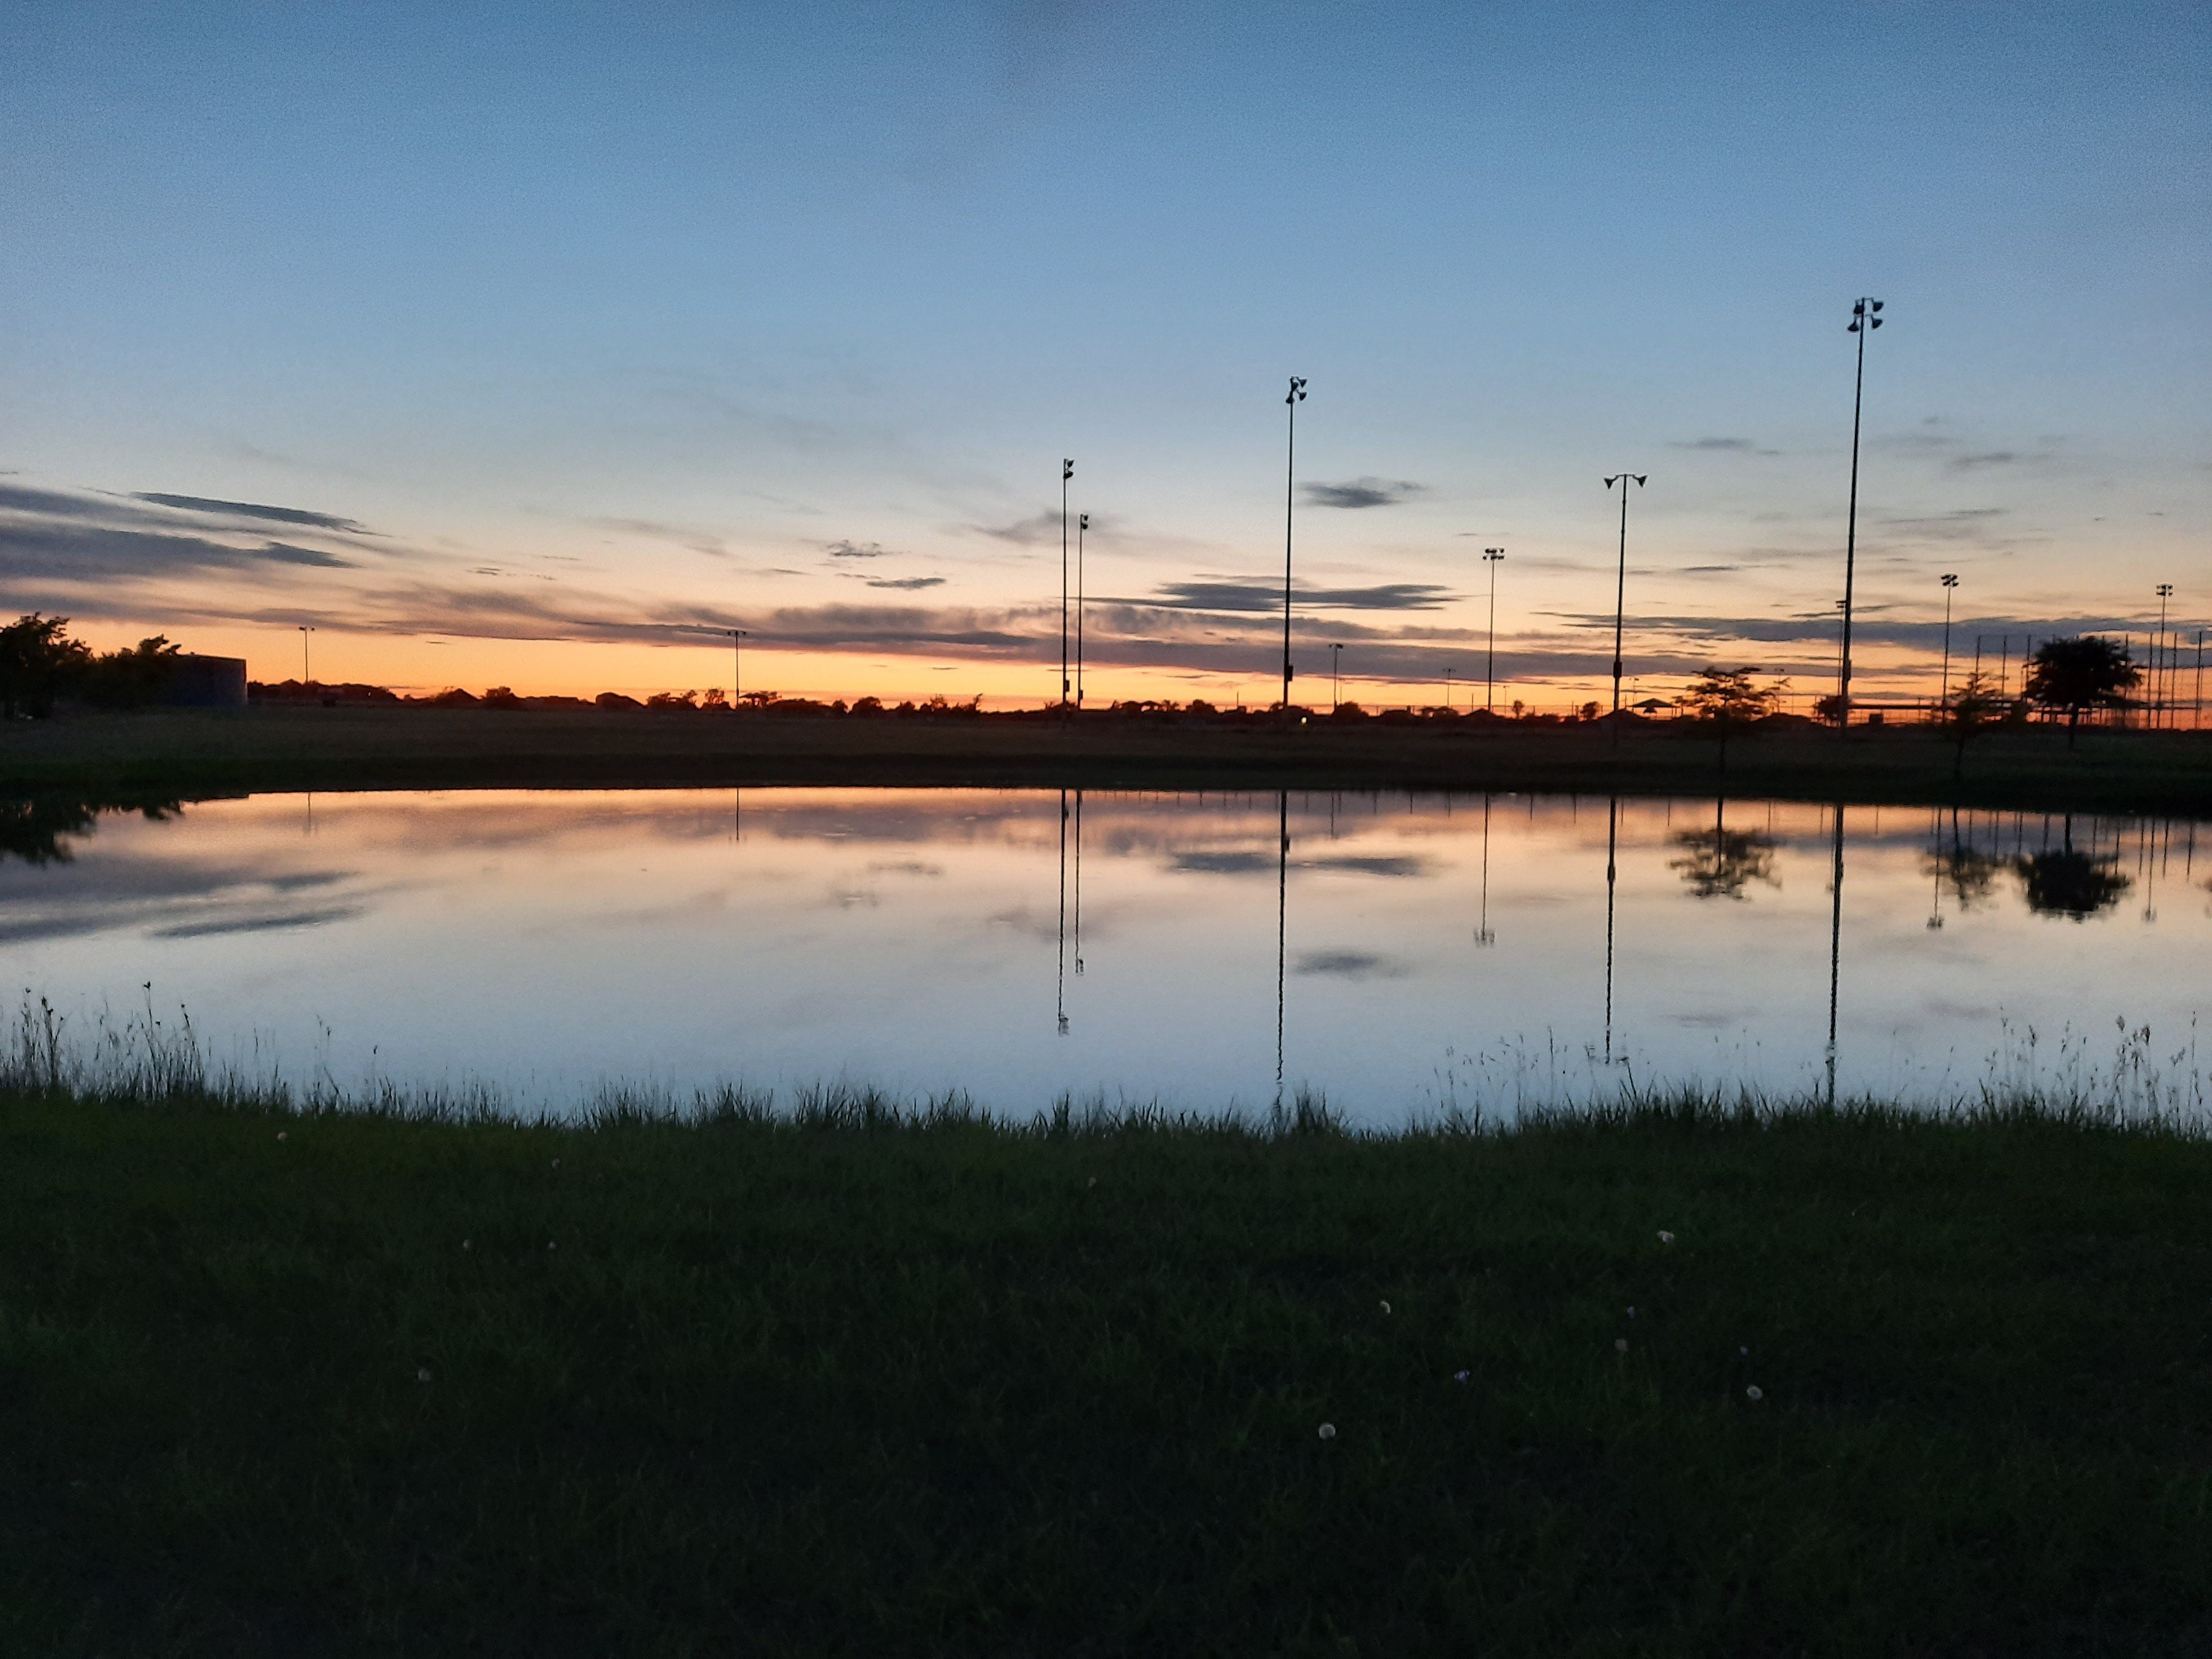 Sunset in a park